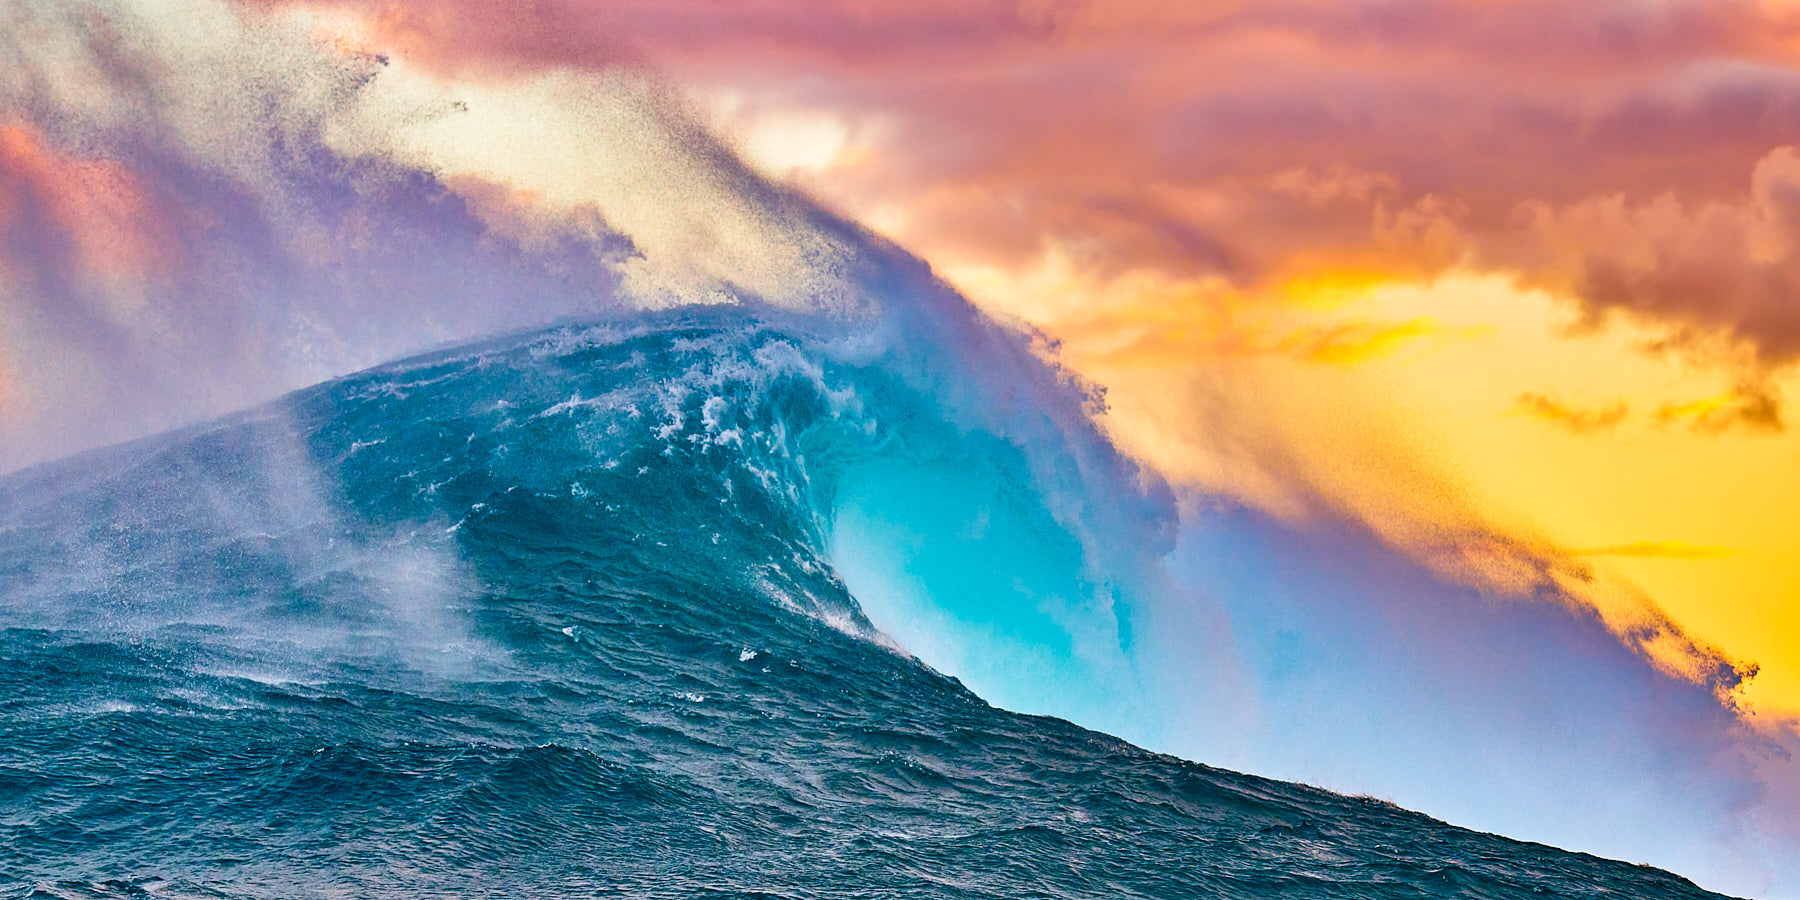 panoramic photograph of the biggest wave in Hawaii Jaws at sunrise with very vibrant and dramatic colors.  Photographed on the North Shore of Maui